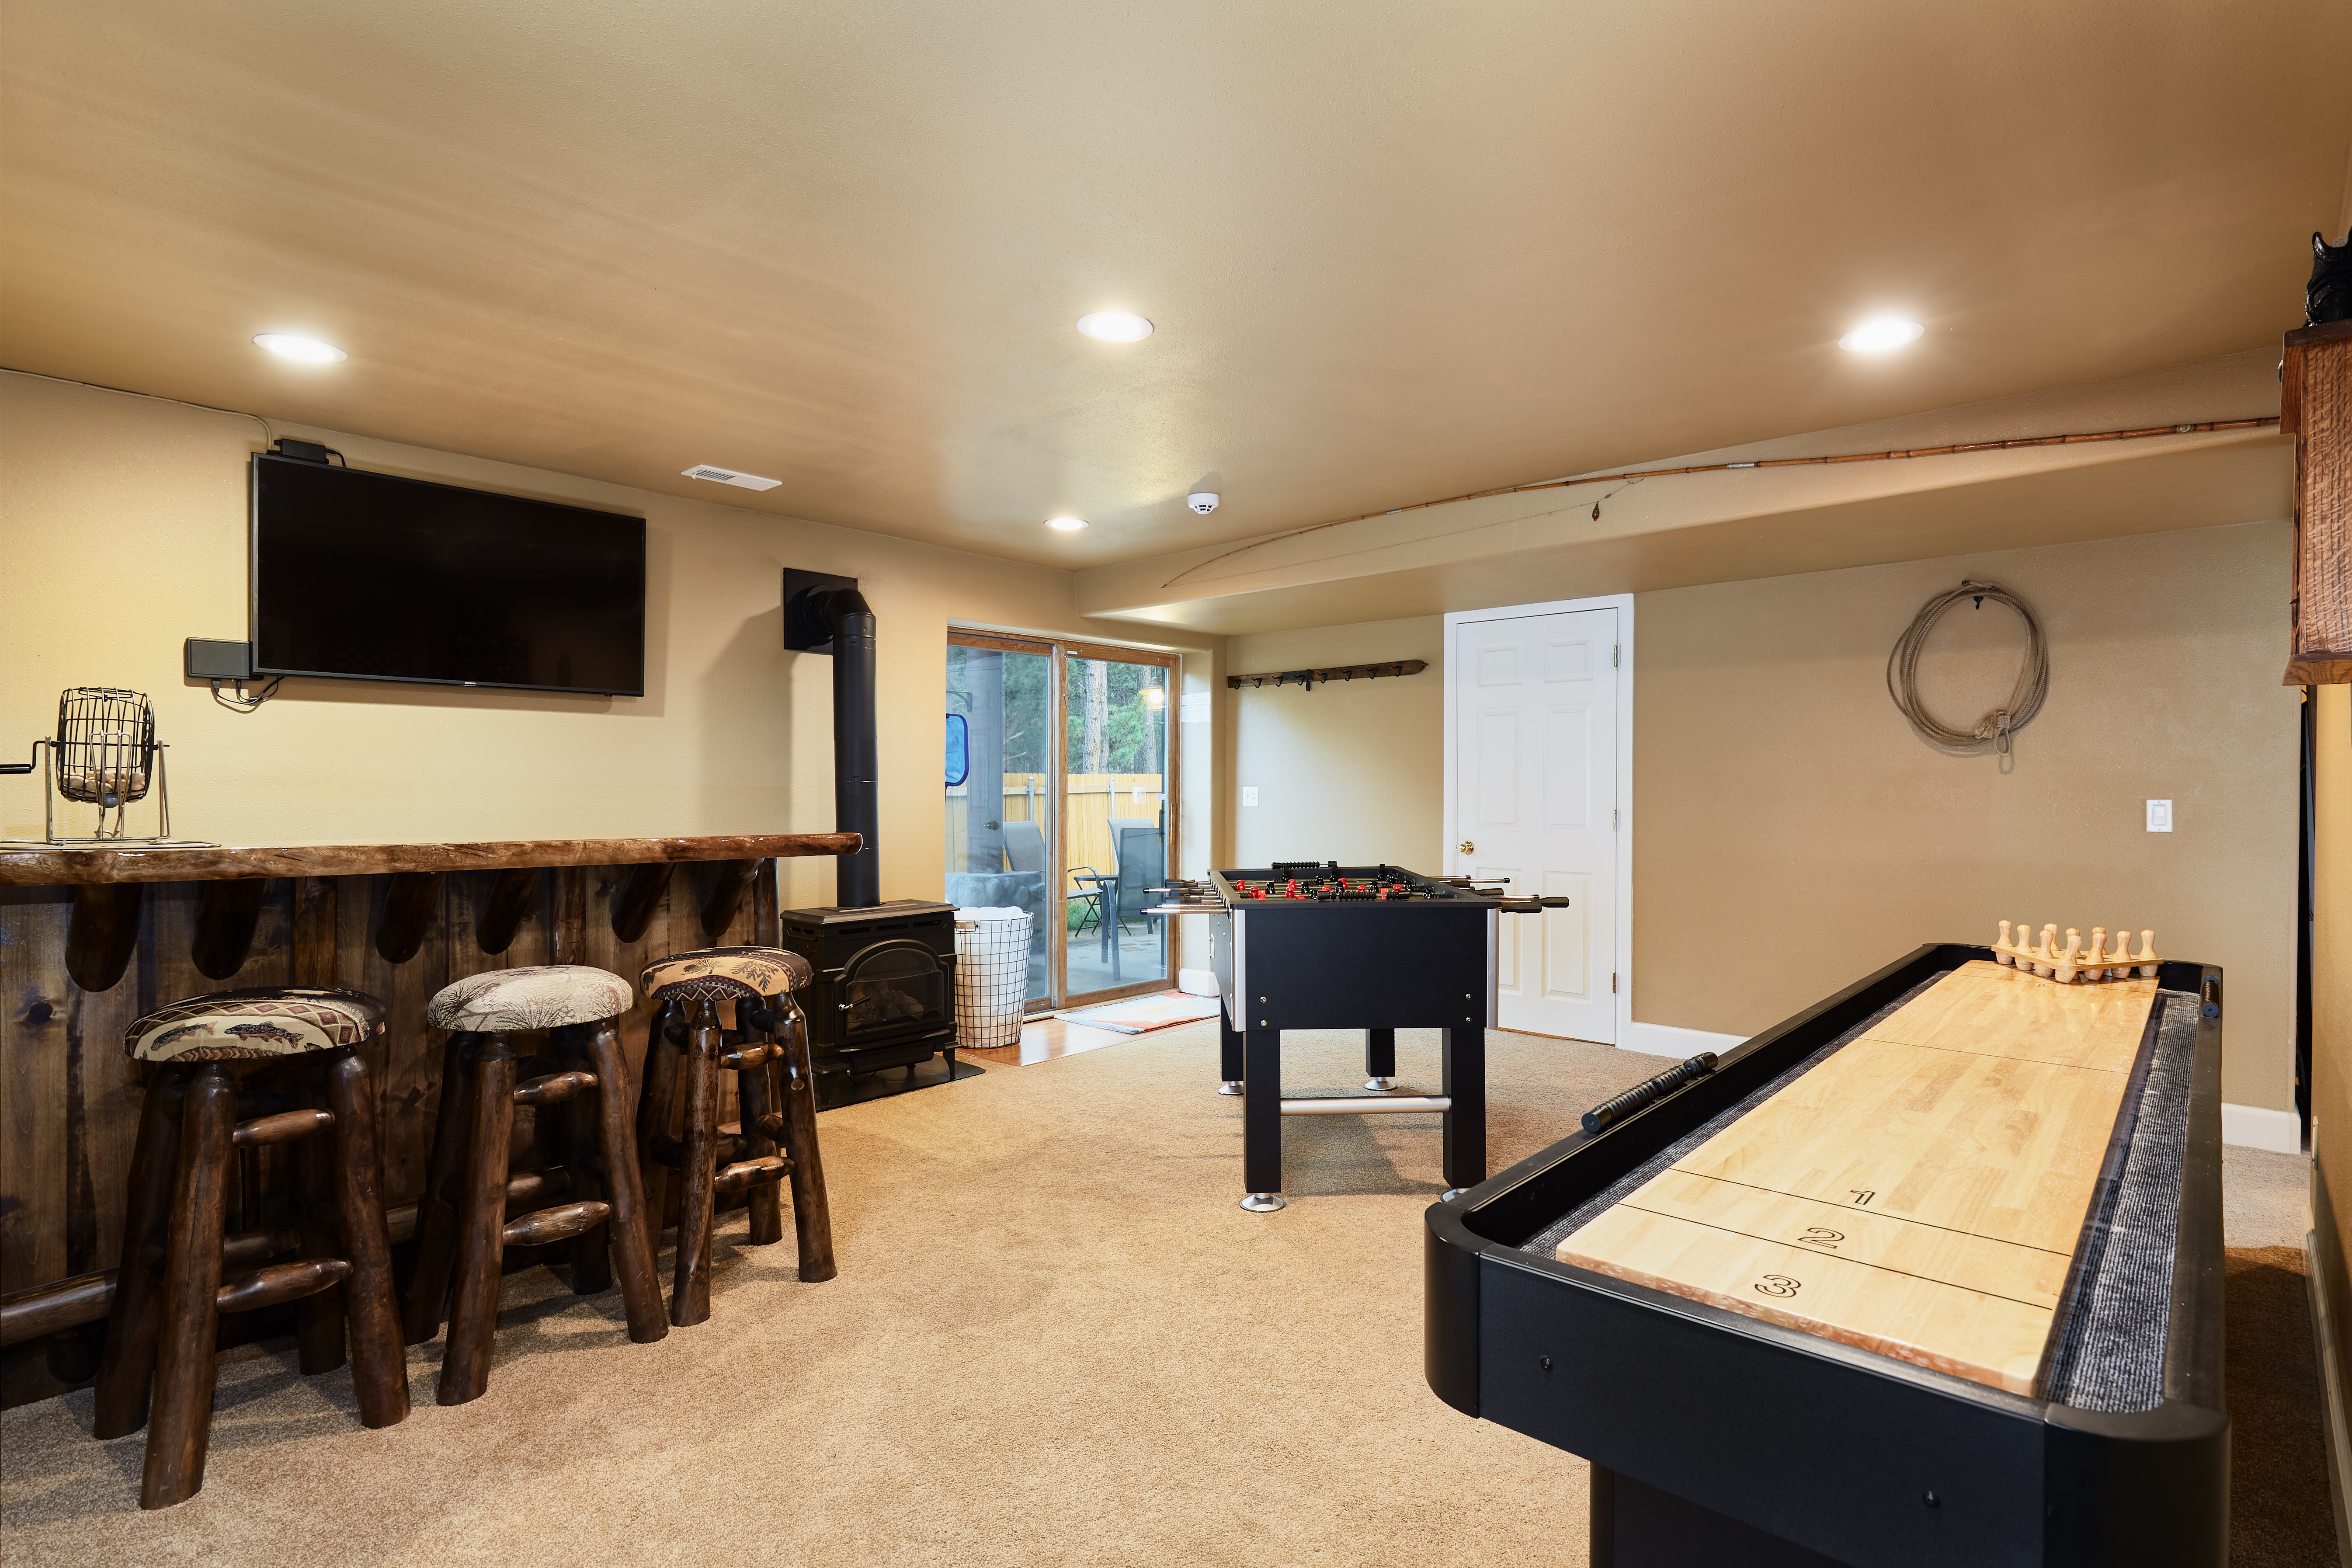 The basement is home to the game room with bar, TV, shuffleboard and foosball table.